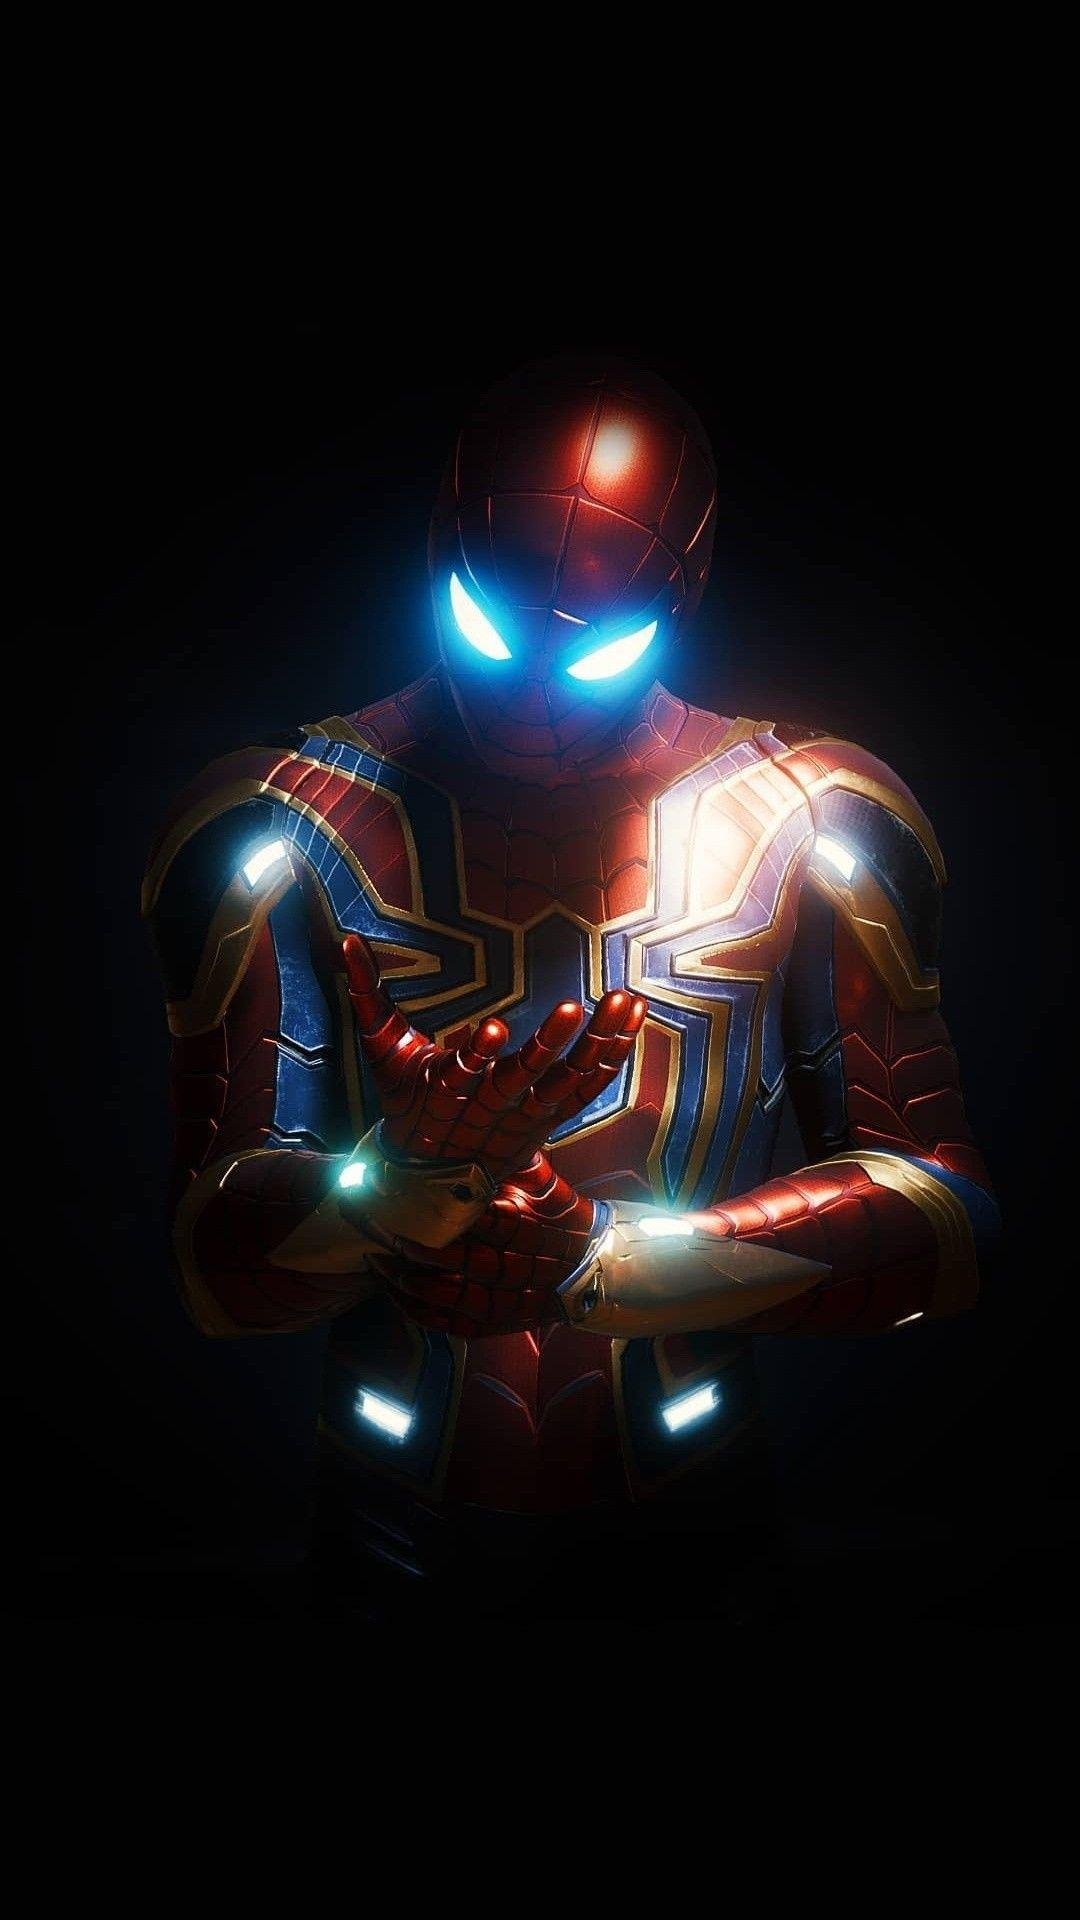 Spider Man Endgame Wallpapers Wallpaper Cave